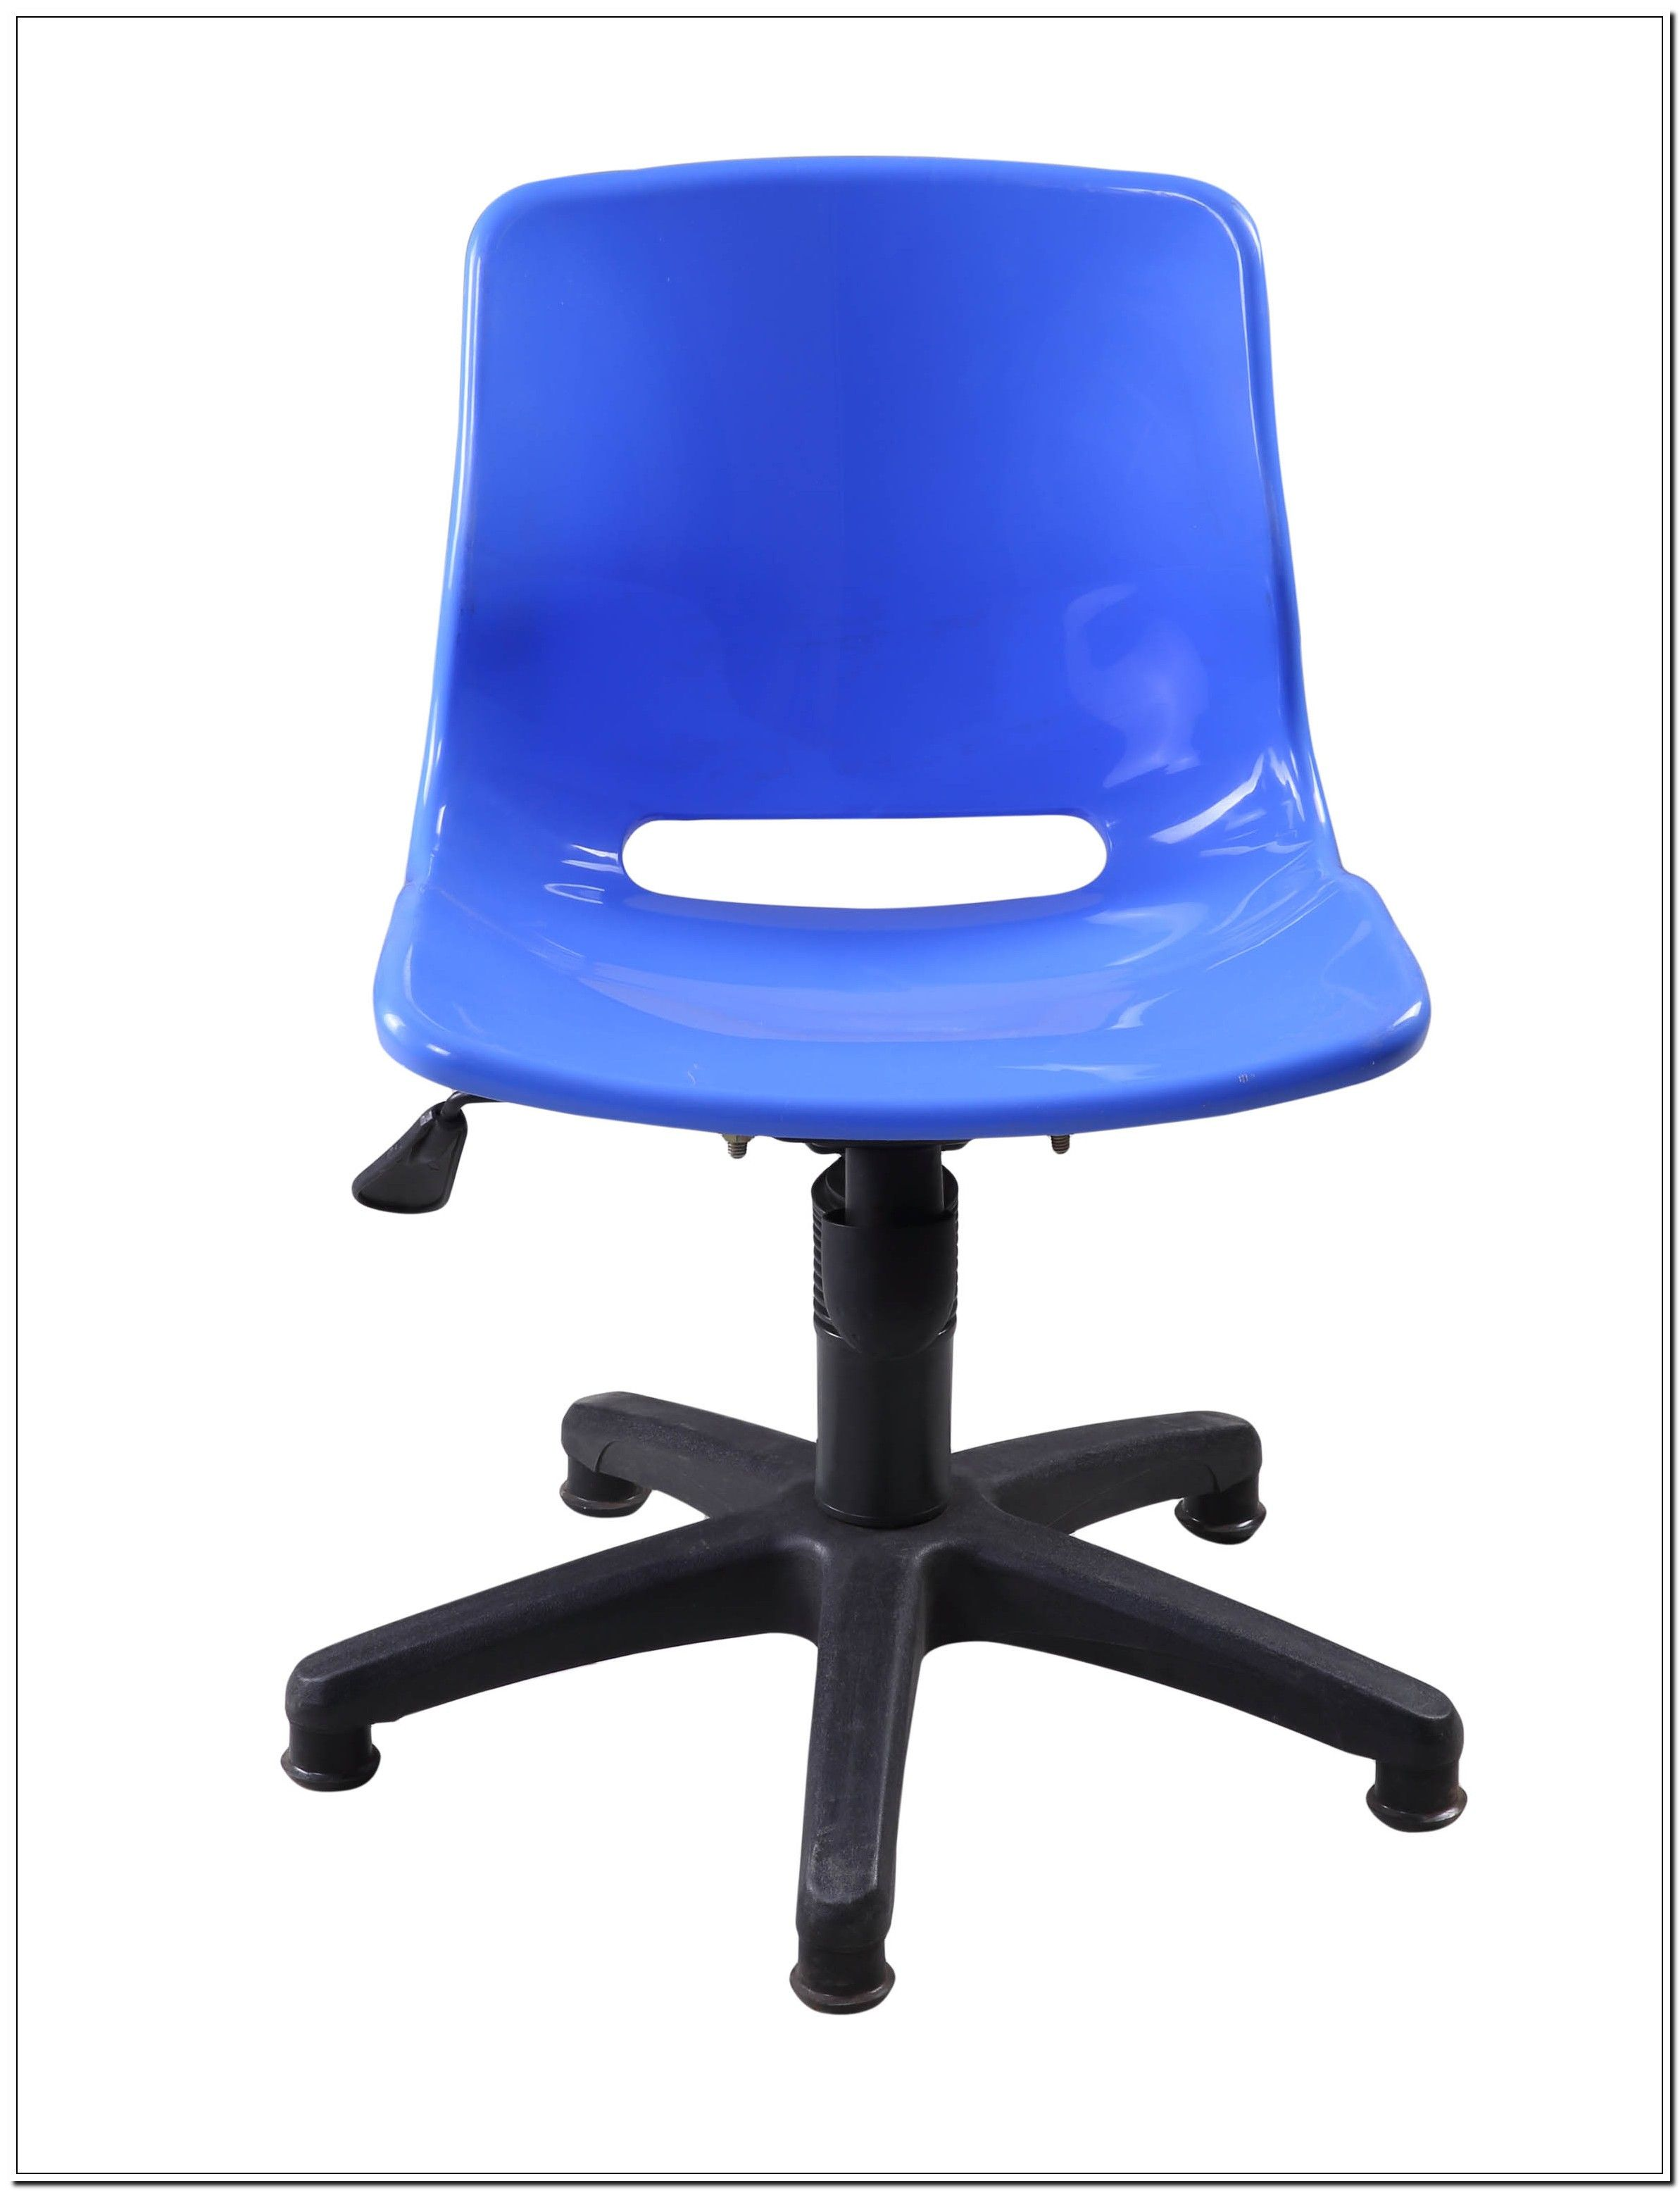 125 Reference Of Swivel Chair Price In Bangladesh In 2020 Chair Swivel Chair Chair Price